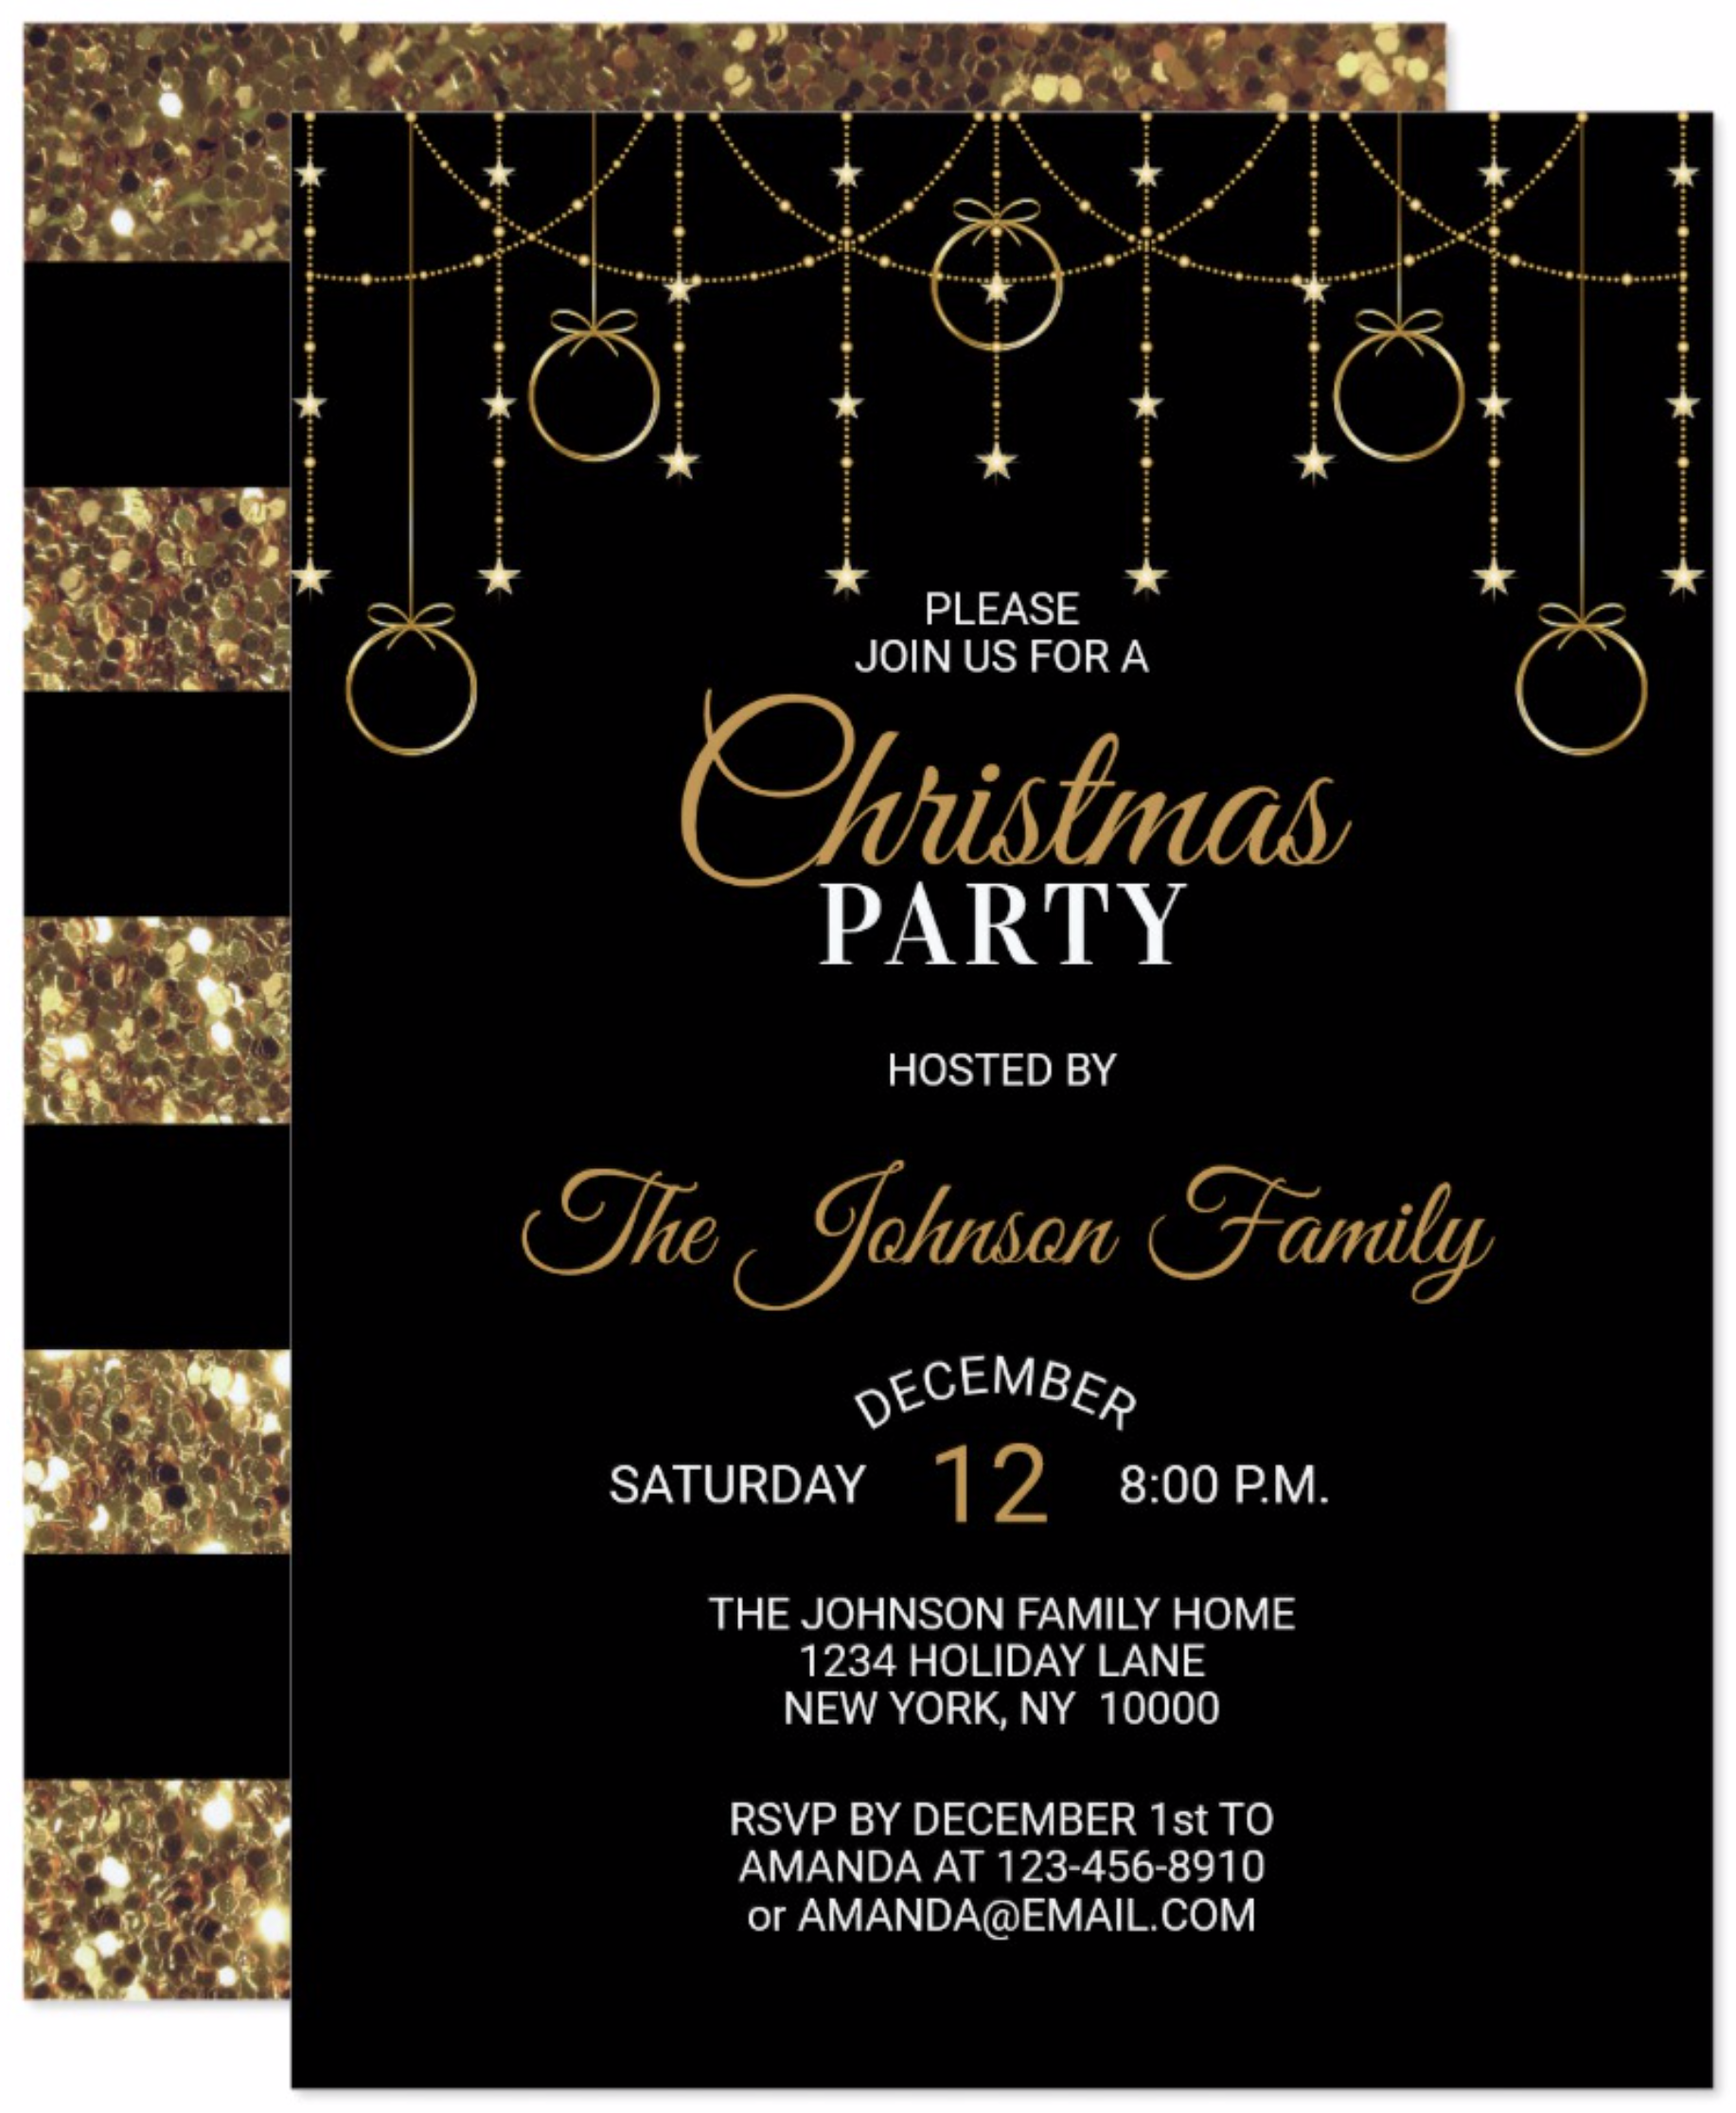 Christmas Party Black Gold Glitter Stars Invitation Gold Glitter Stars Black Gold Party Modern Christmas Party